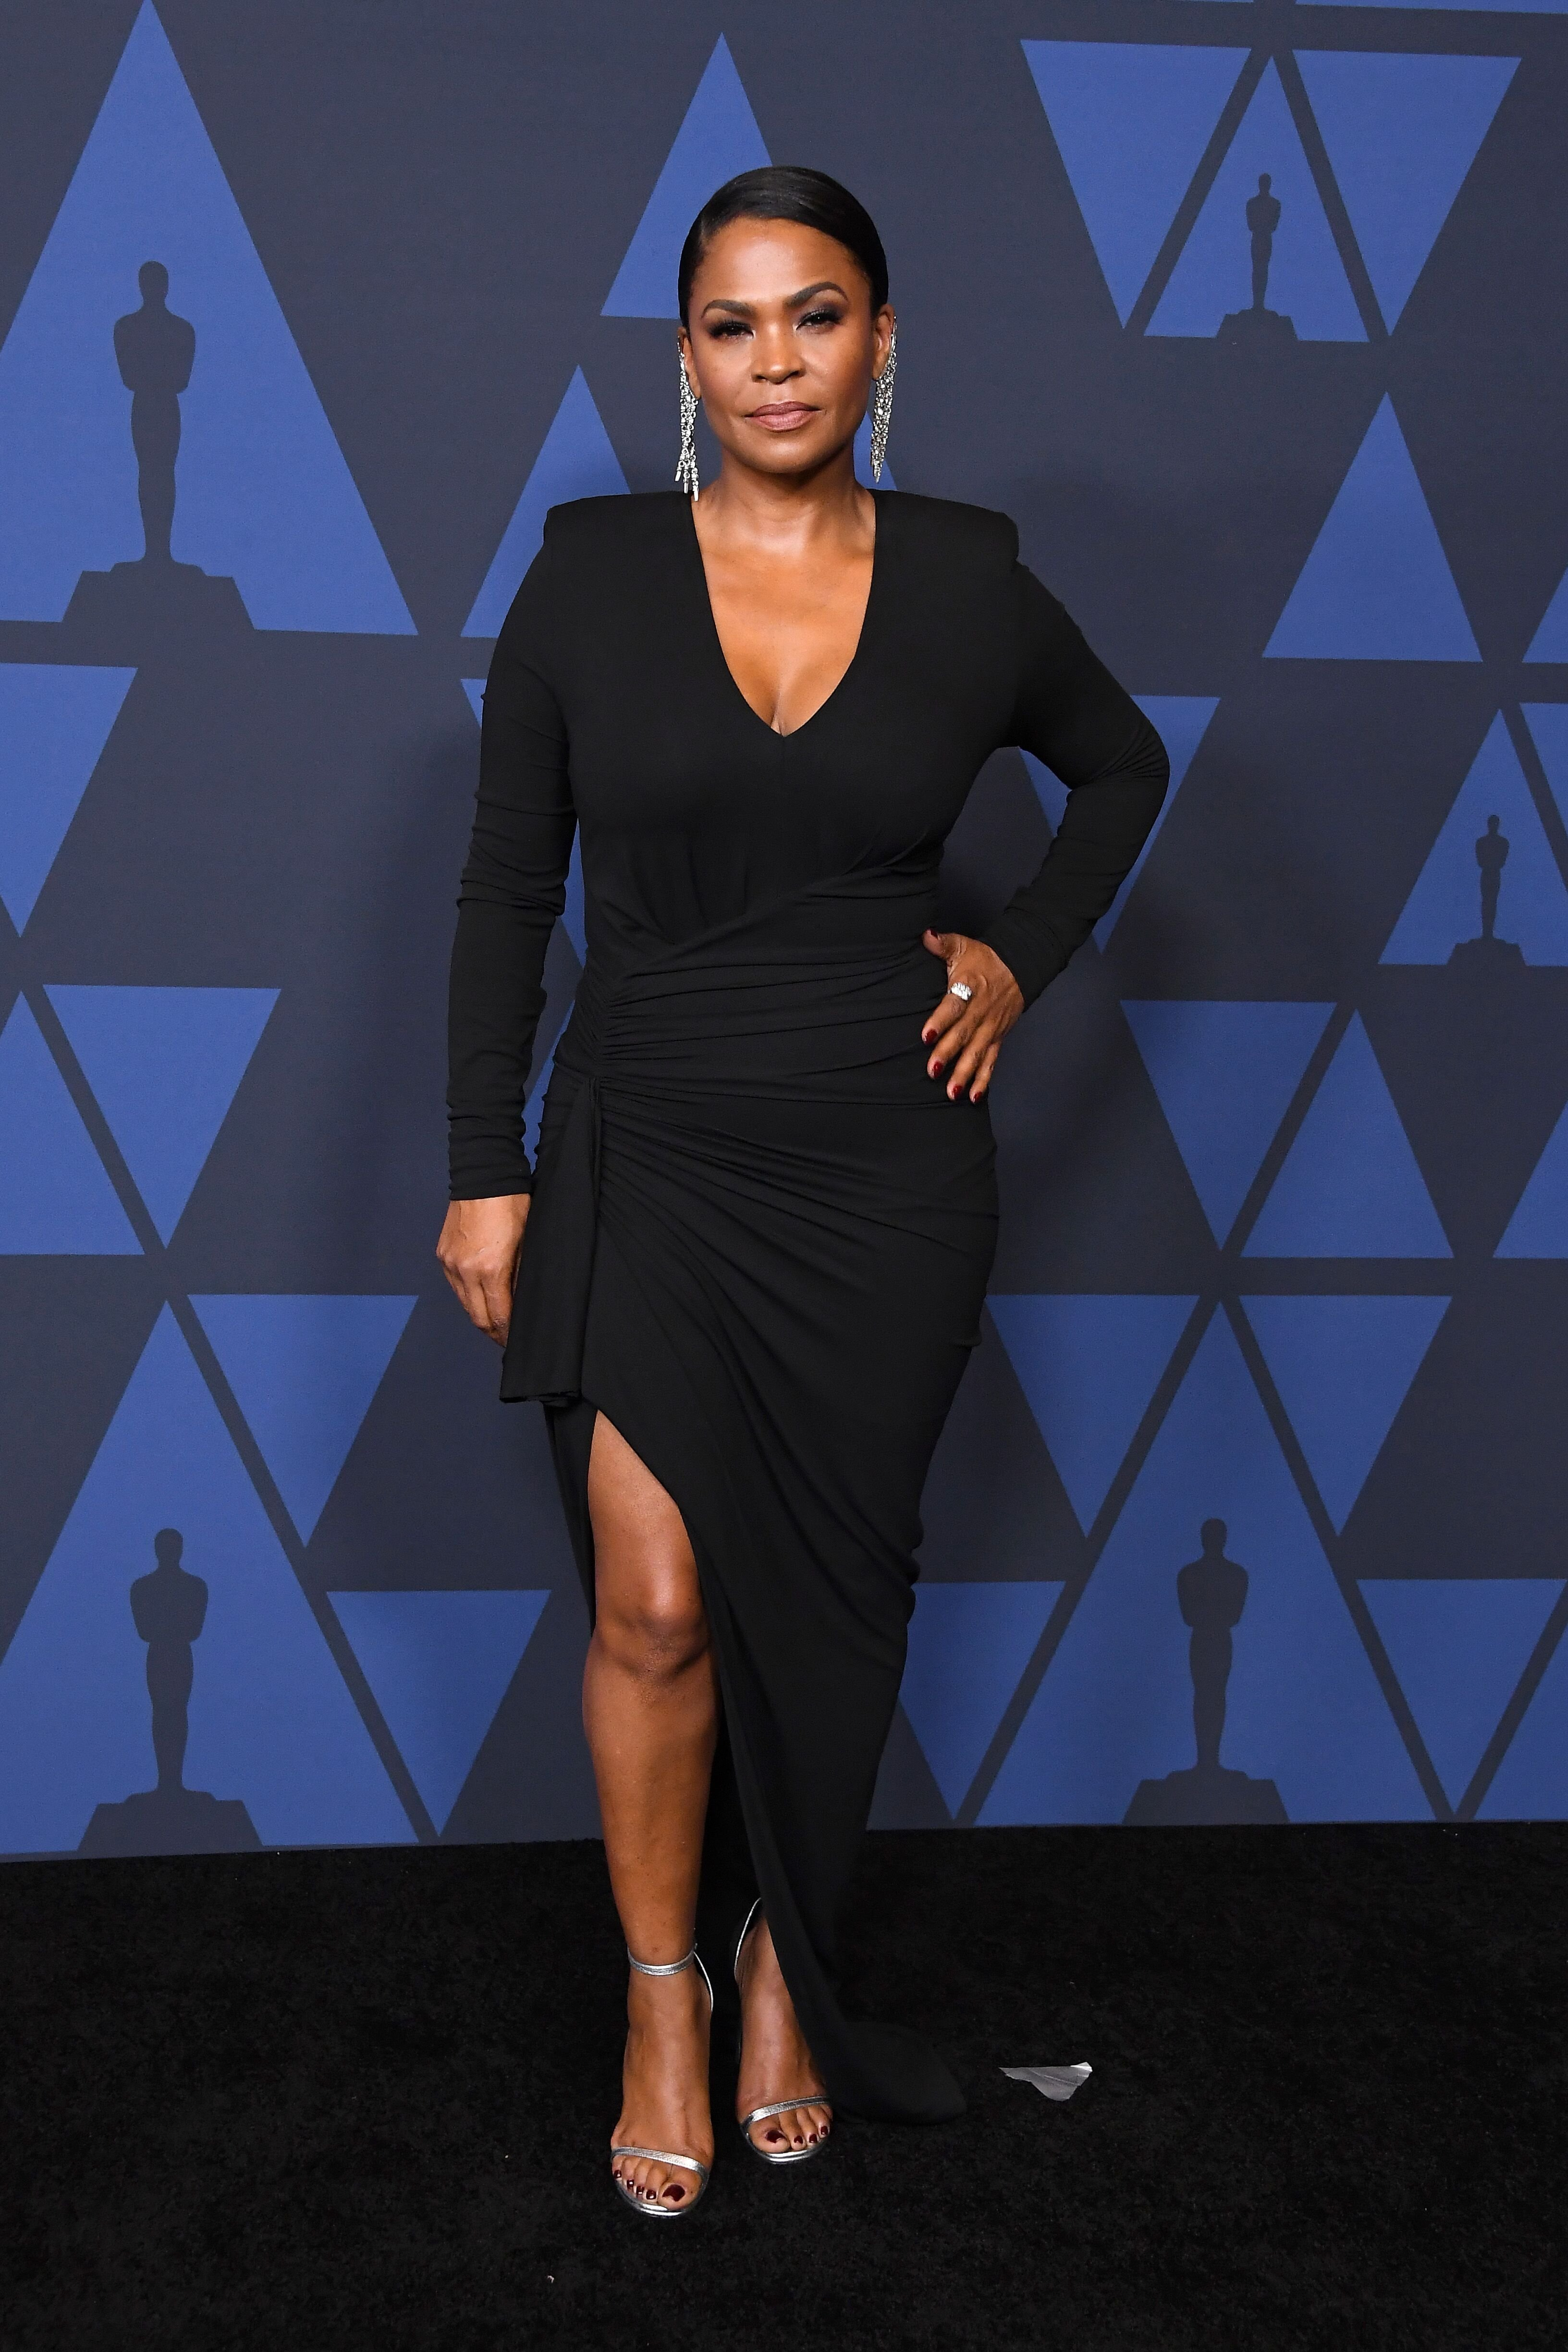 Nia Long attends an awards night ceremony | Source: Getty Images/GlobalImagesUkraine